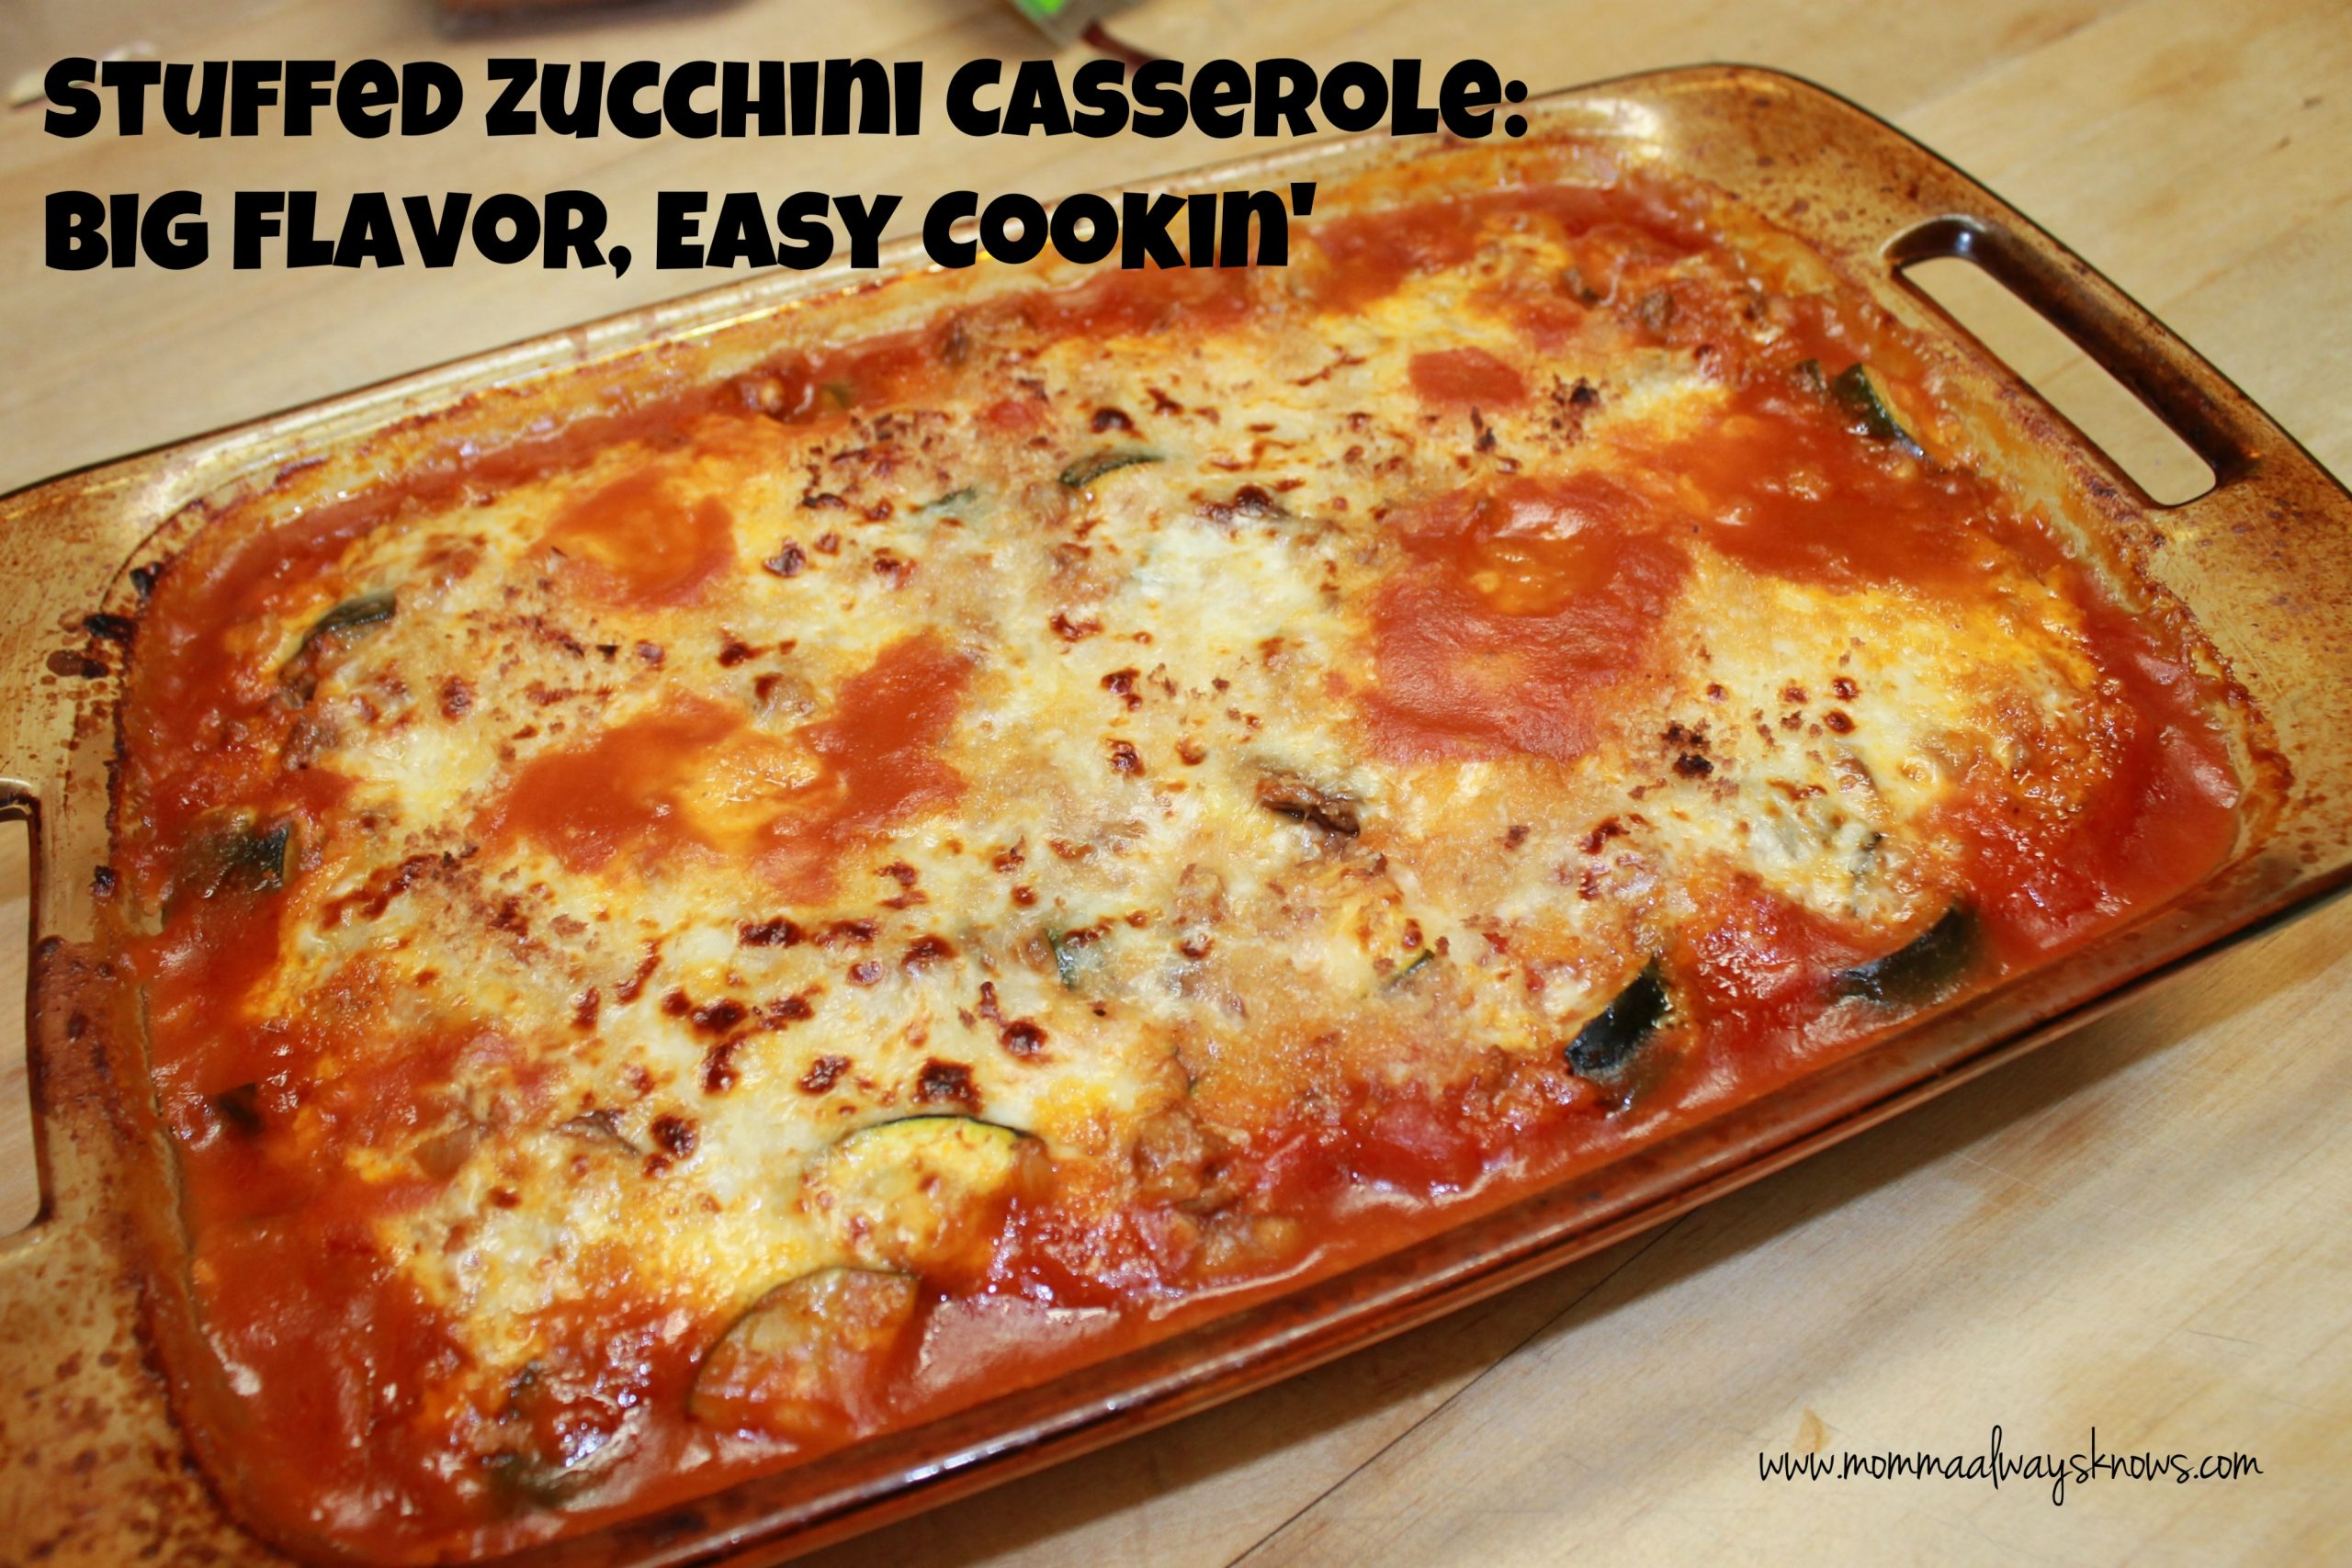 Stuffed Zucchini Casserole: Big Flavor, Easy Cookin ...